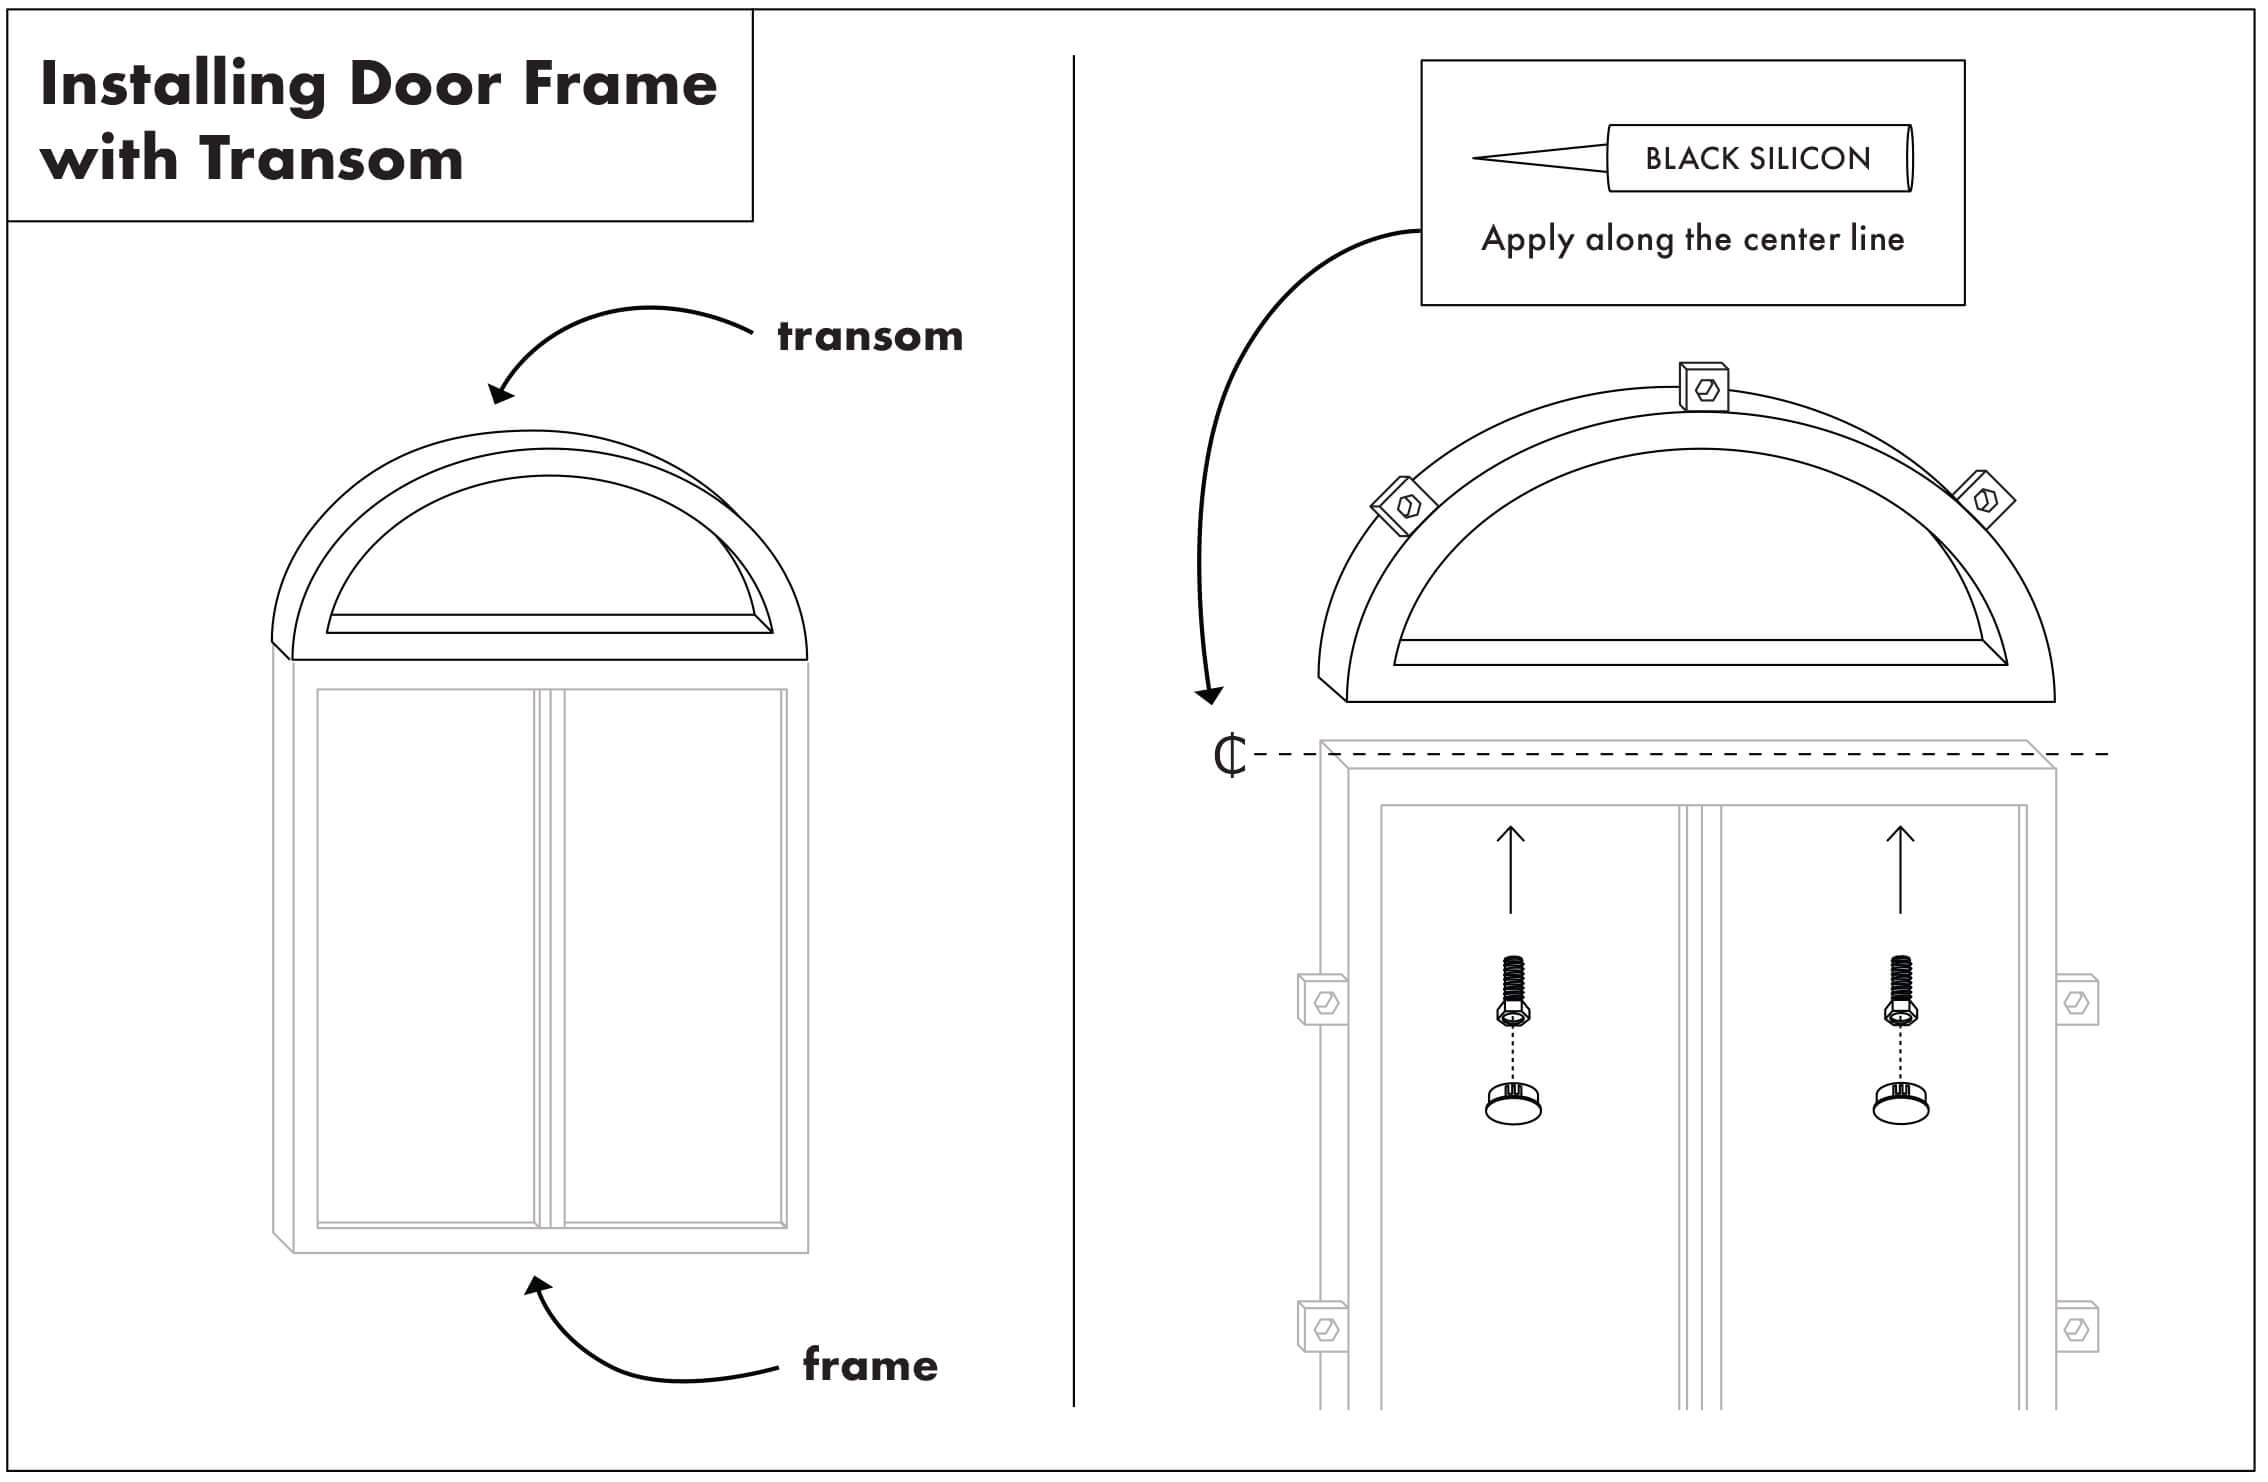 Installing Door Frame with Transom